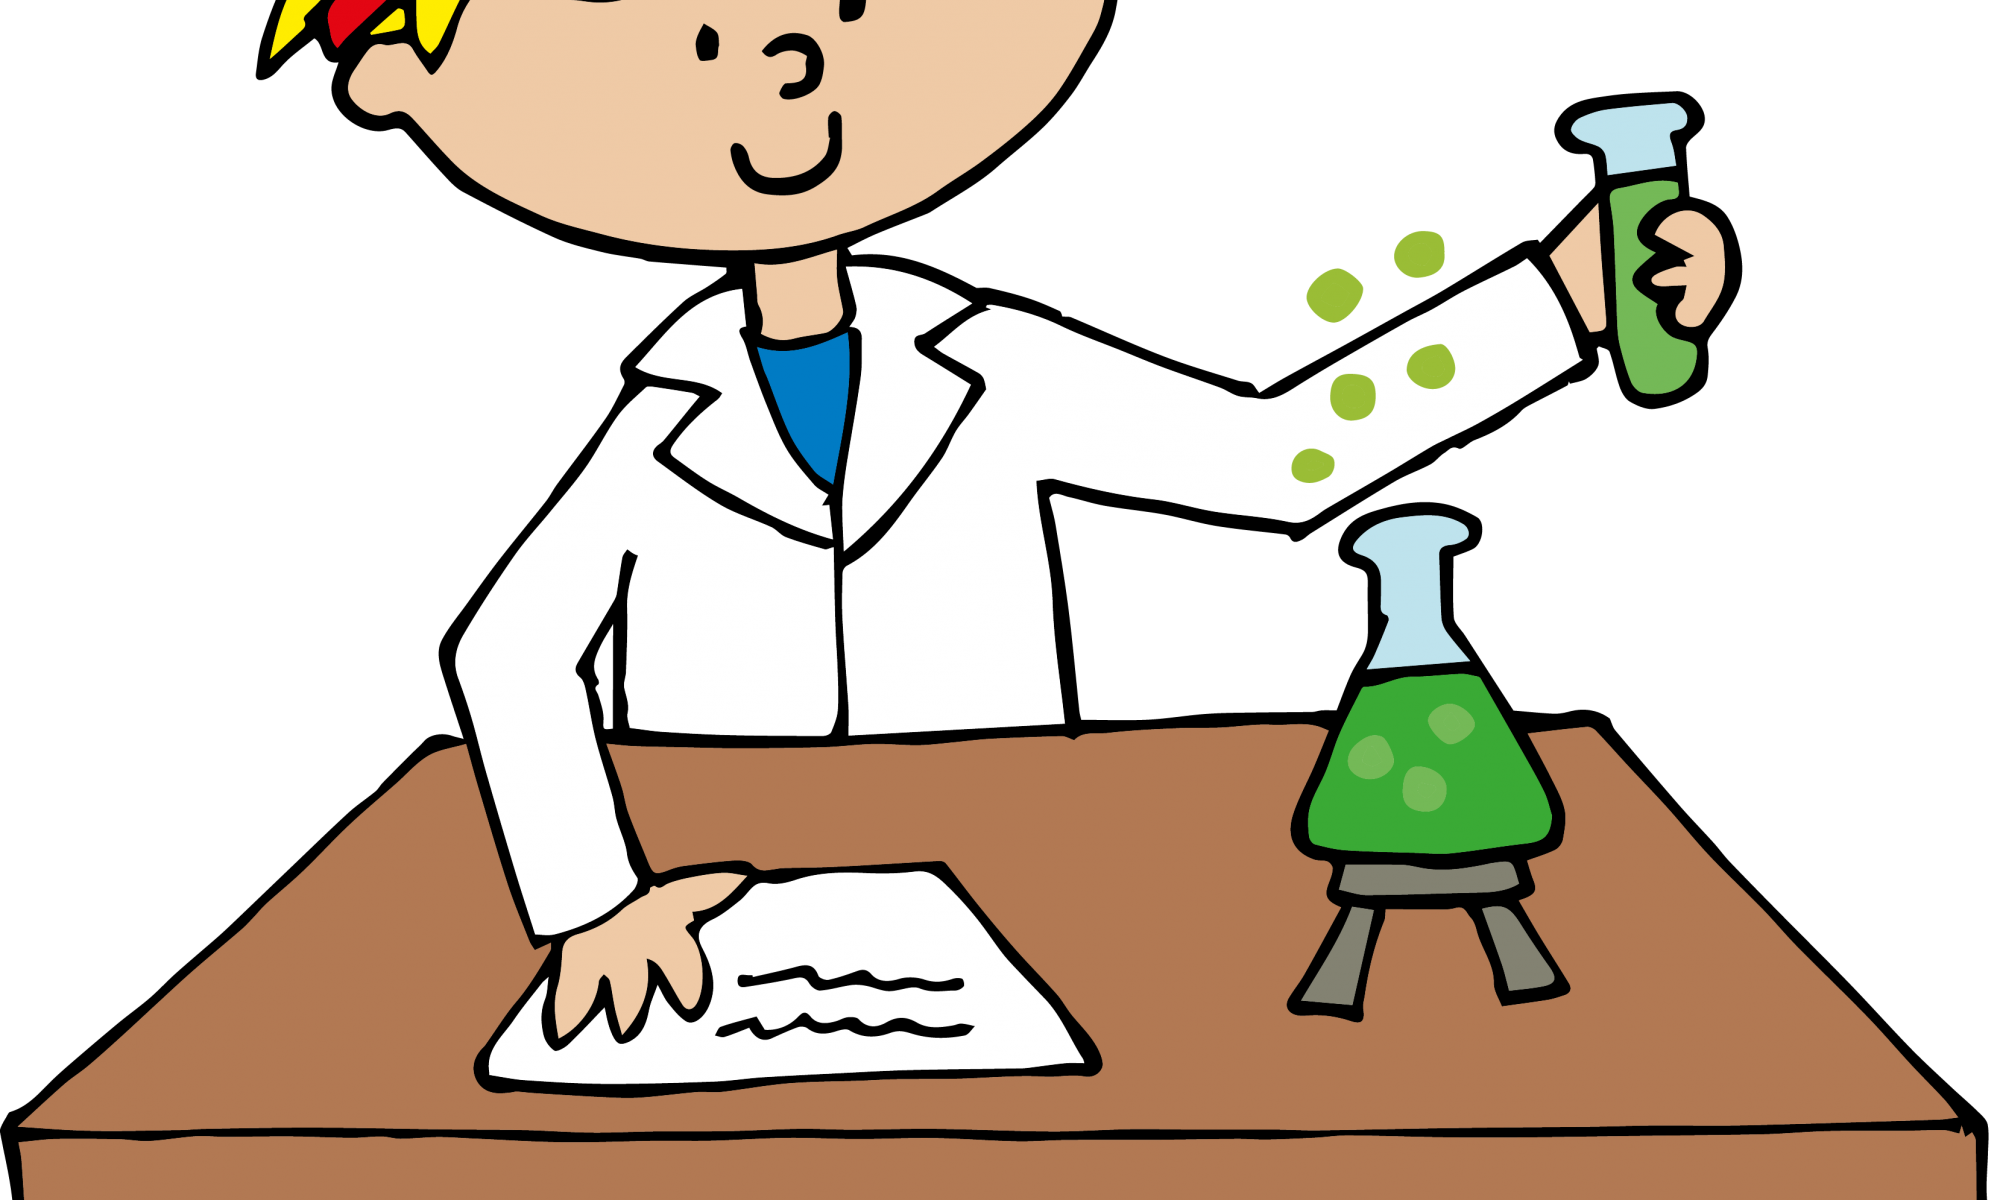 Inspirational of science png. Lab clipart lab safety